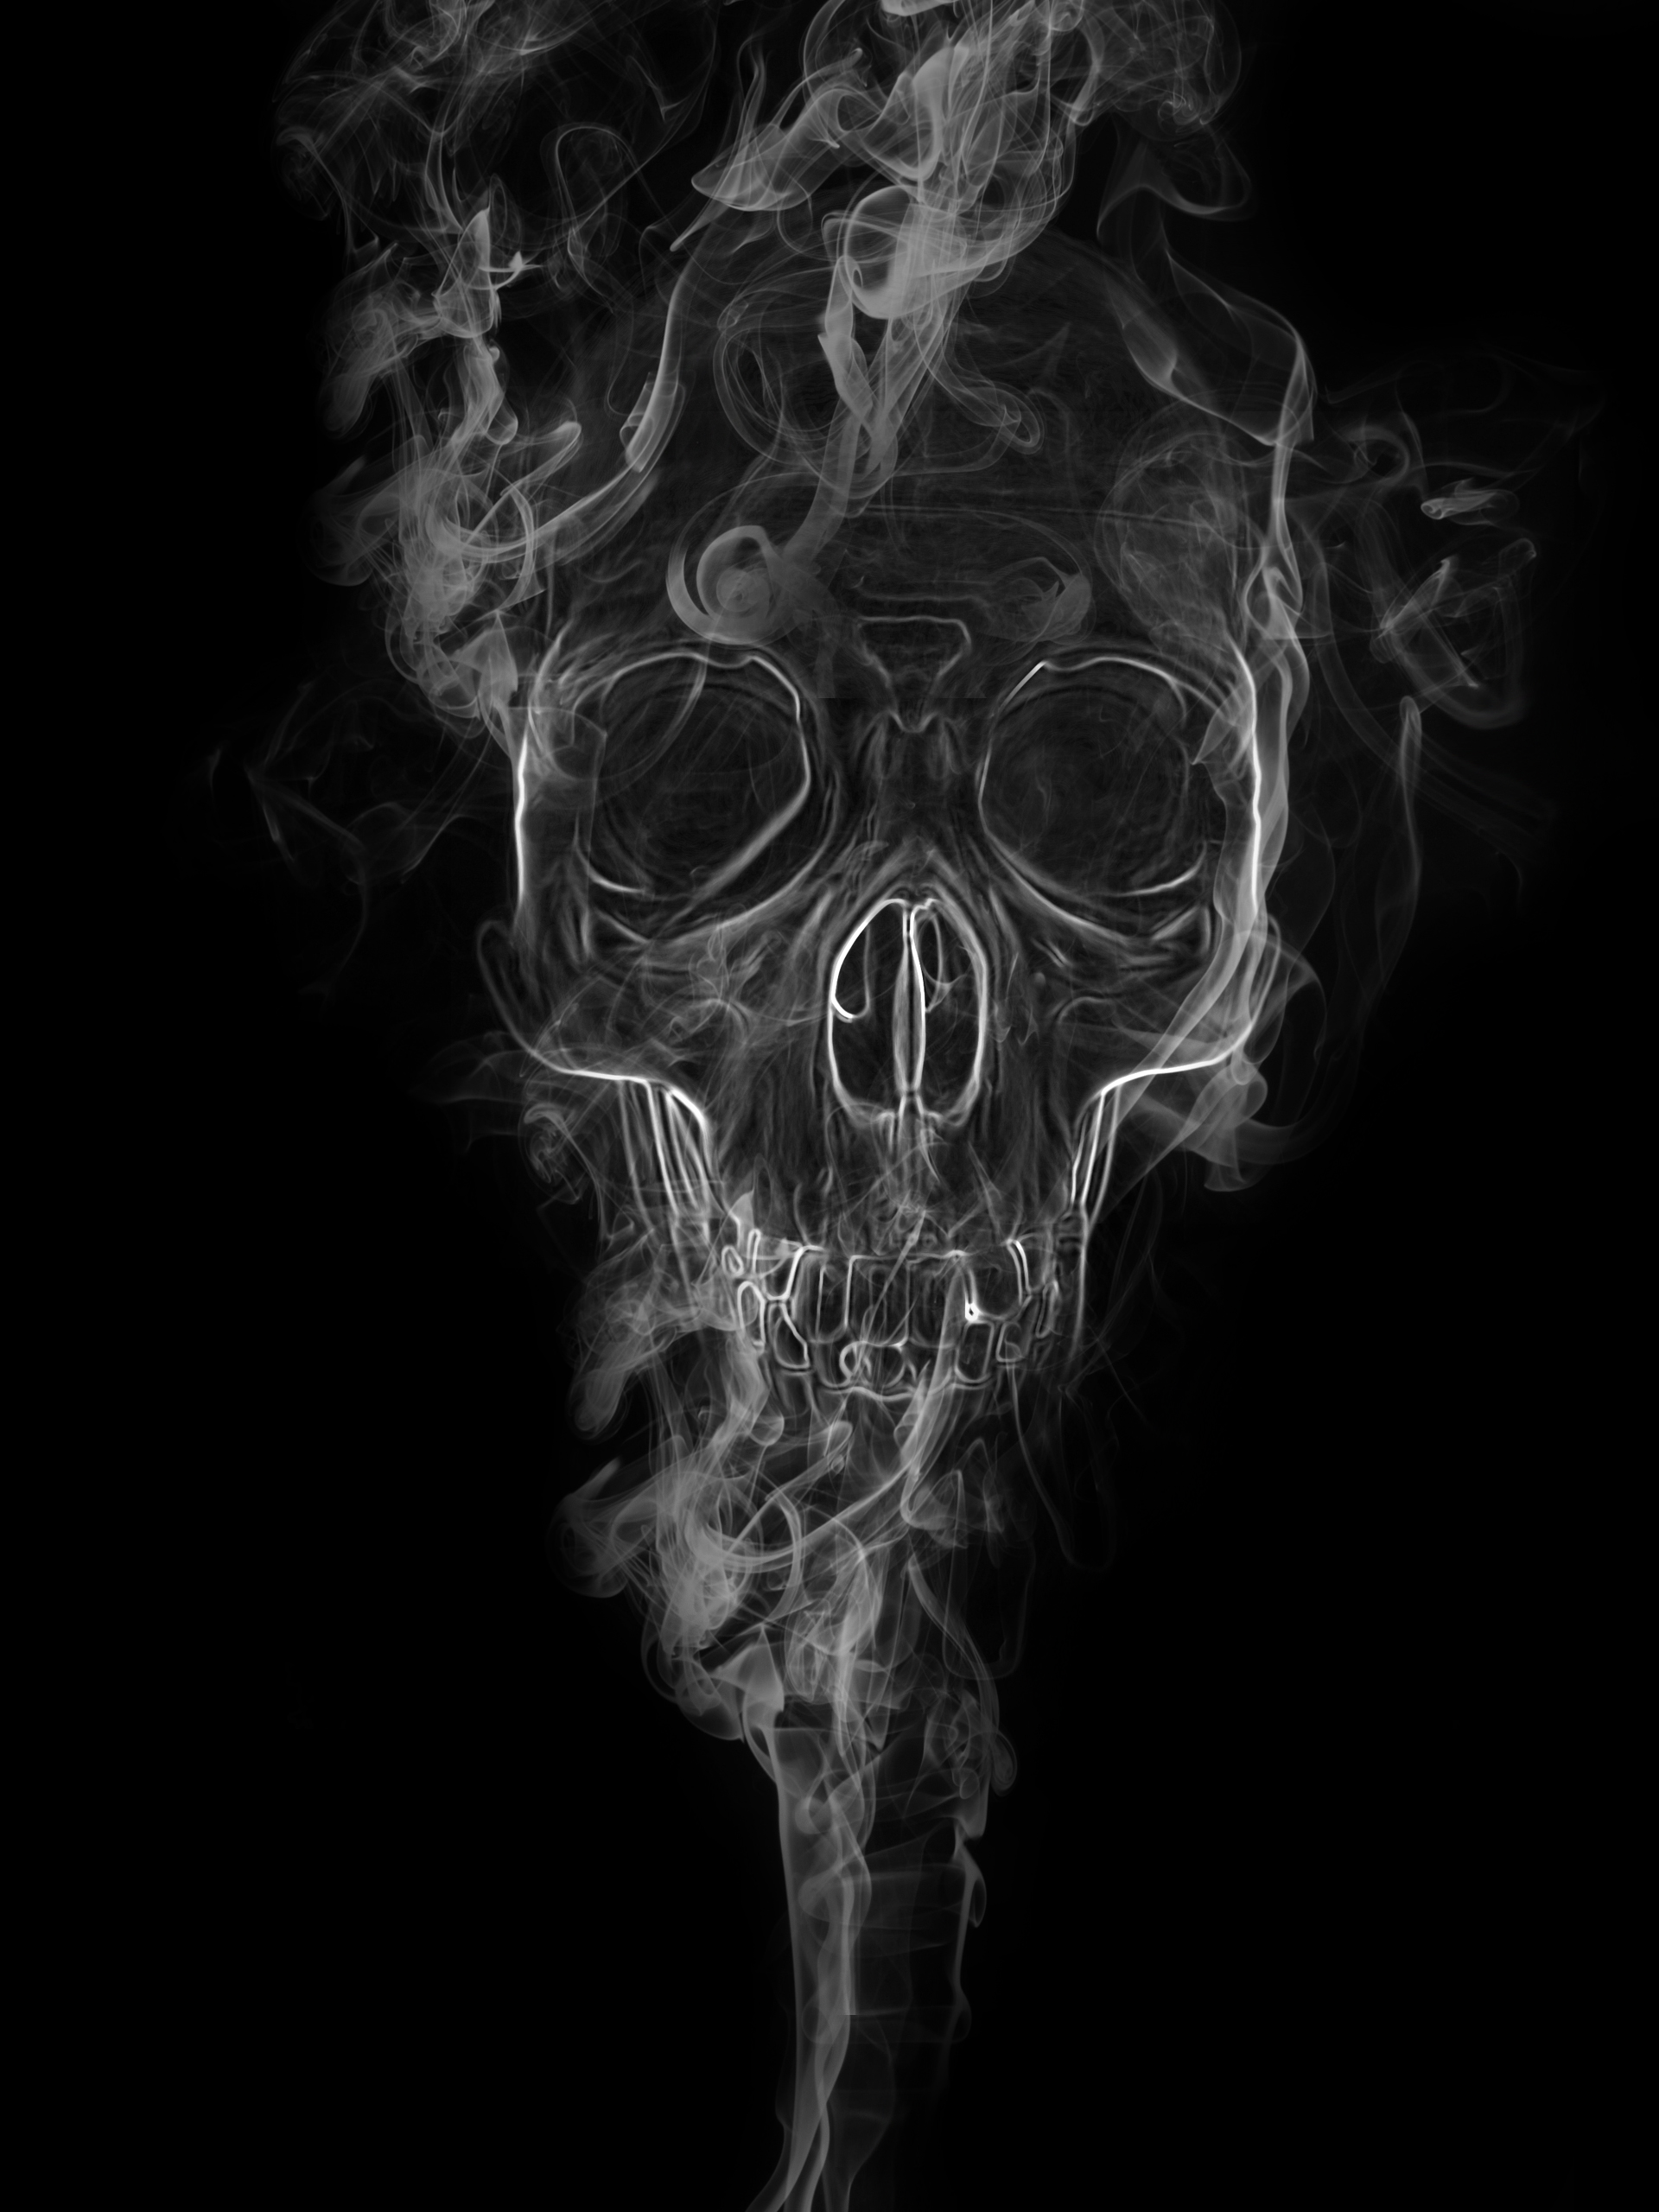 skull_in_smoke_by_toinouandre-d4v6ggh